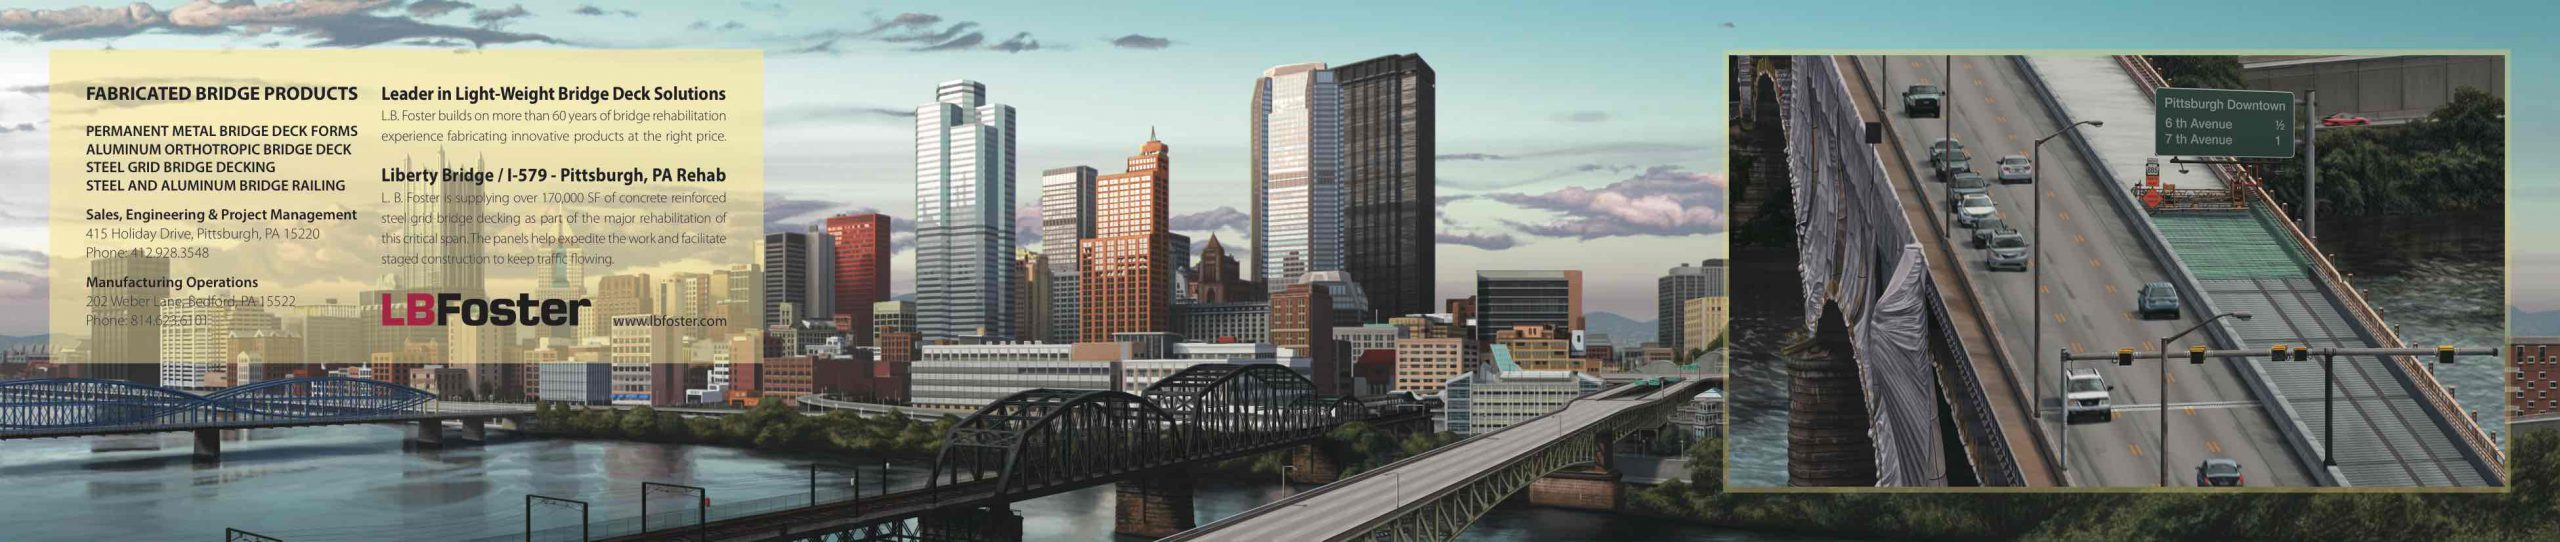 Bridge Construction Illustration, Ninetimes, Liberty Bridge, Pittsburgh Bridge, Steel Grid Deck, Bridge Decking, Concrete Reinforced Deck Panel